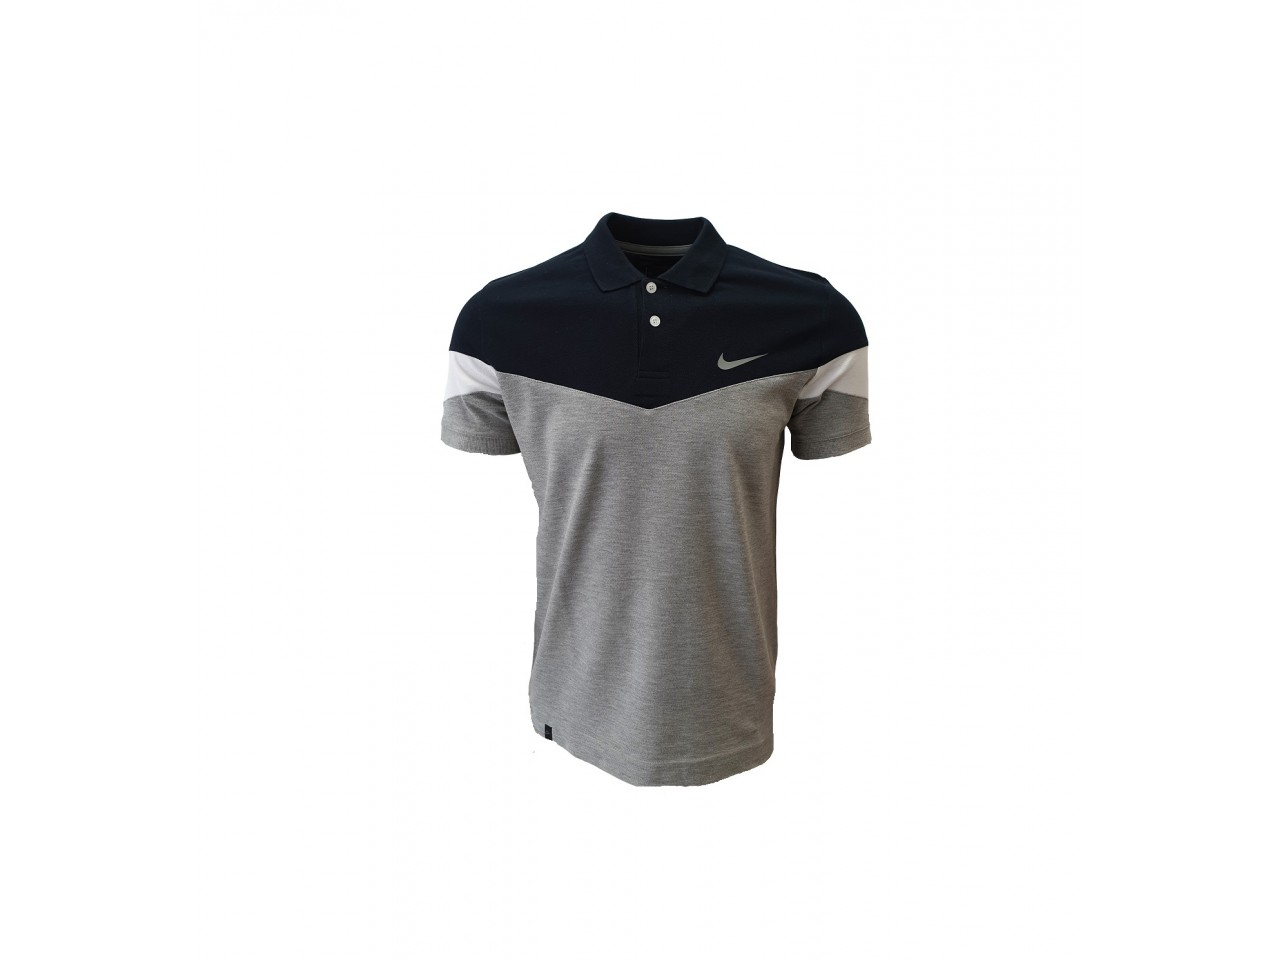 Nike Polo T-Shirt Light Grey Dark Blue